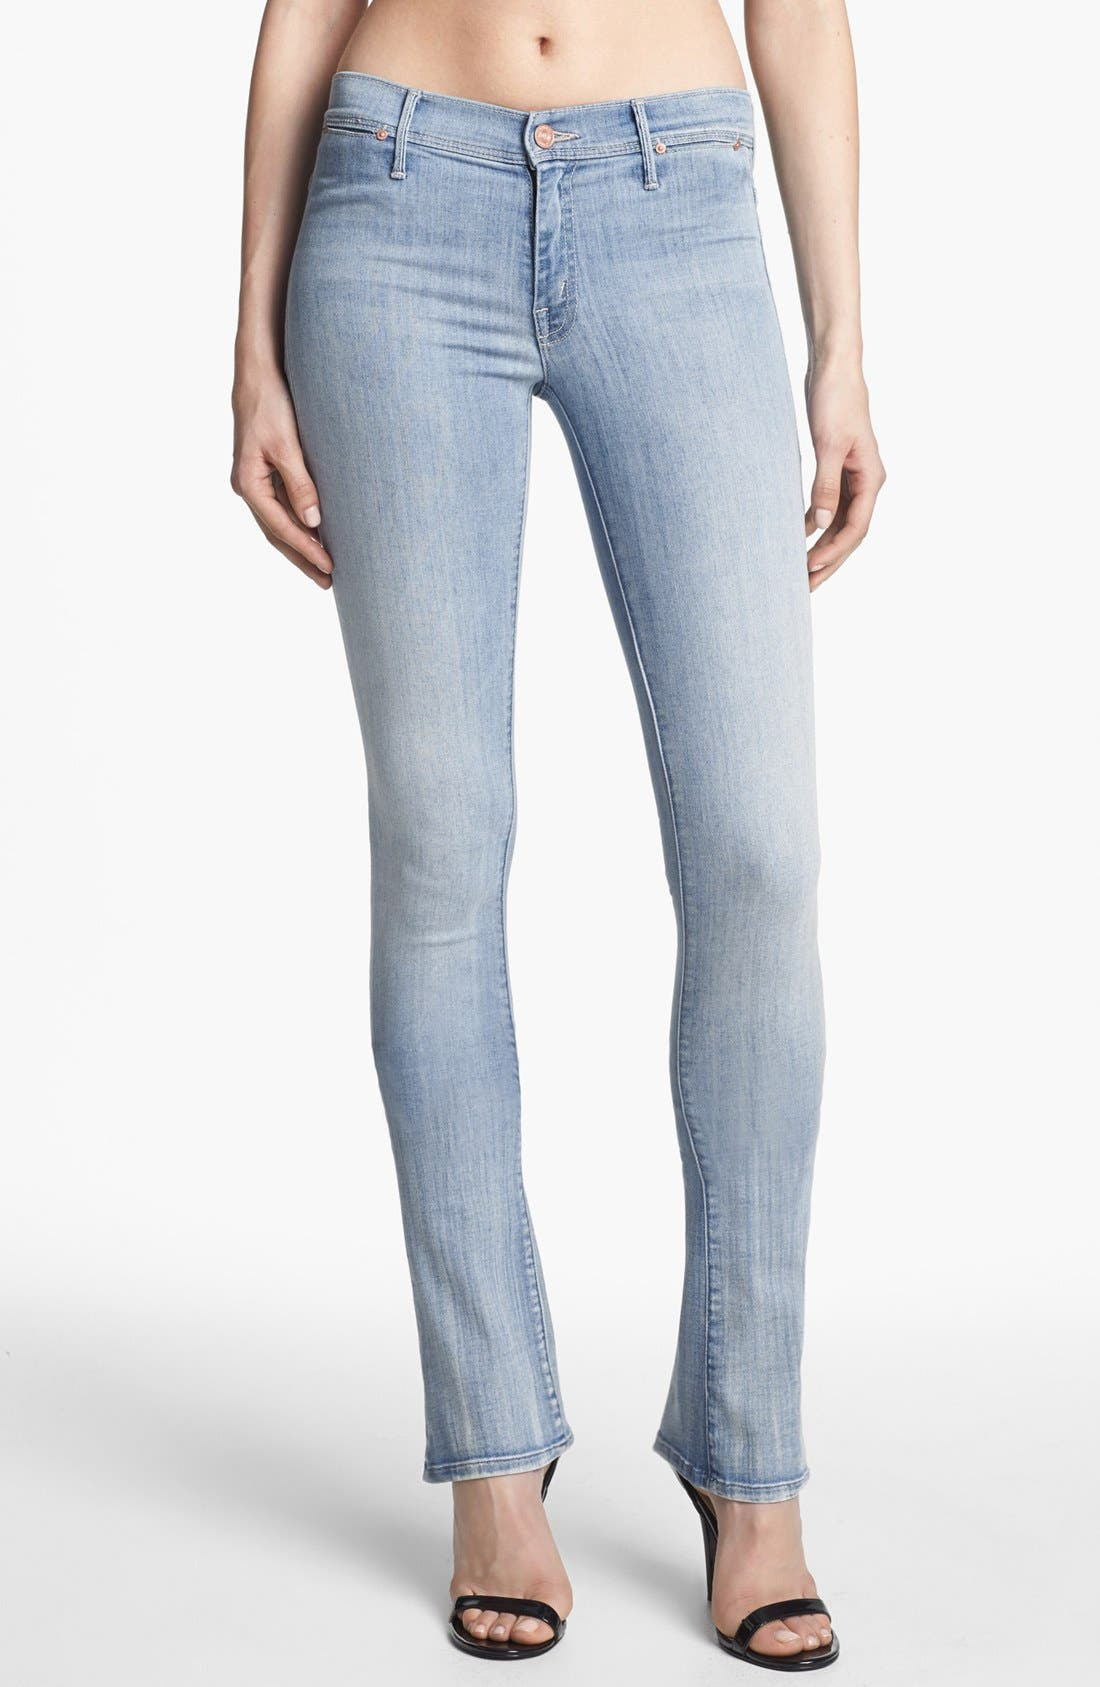 Alternate Image 1 Selected - MOTHER 'The Daydreamer' Skinny Flare Leg Jeans (The Welcome)